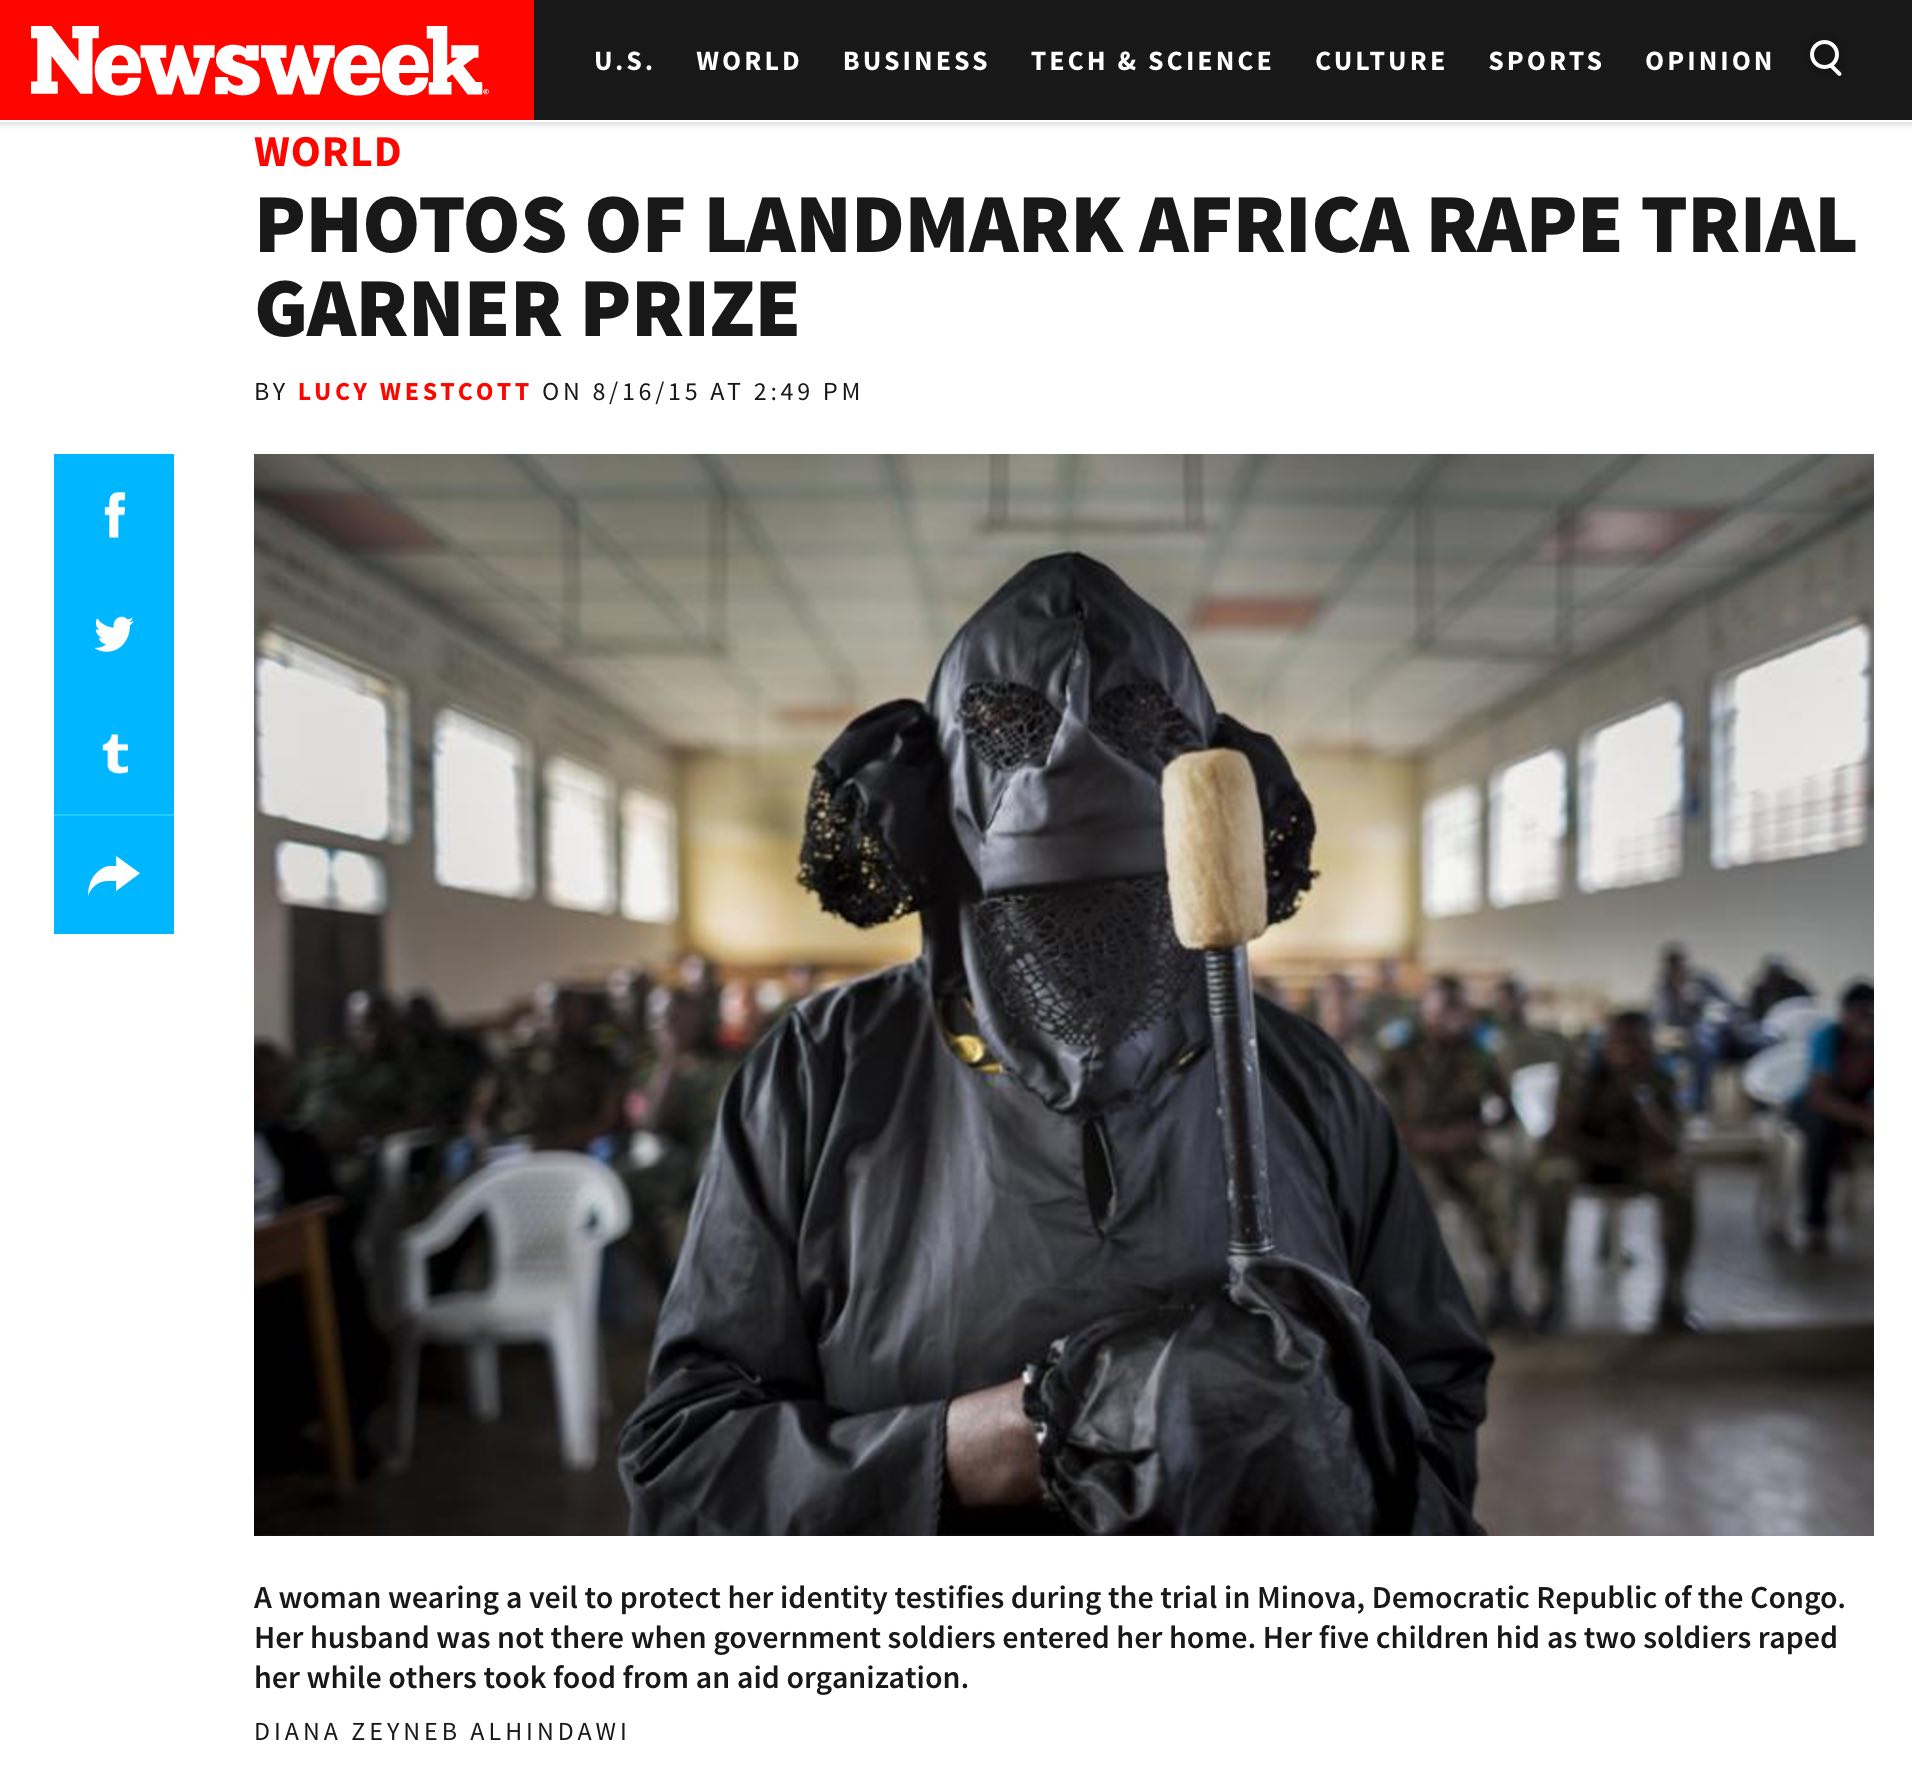 CLICK on title to link to full article     Photos of landmark Africa rape trial garner prize | Newsweek.com, Aug 16, 2015